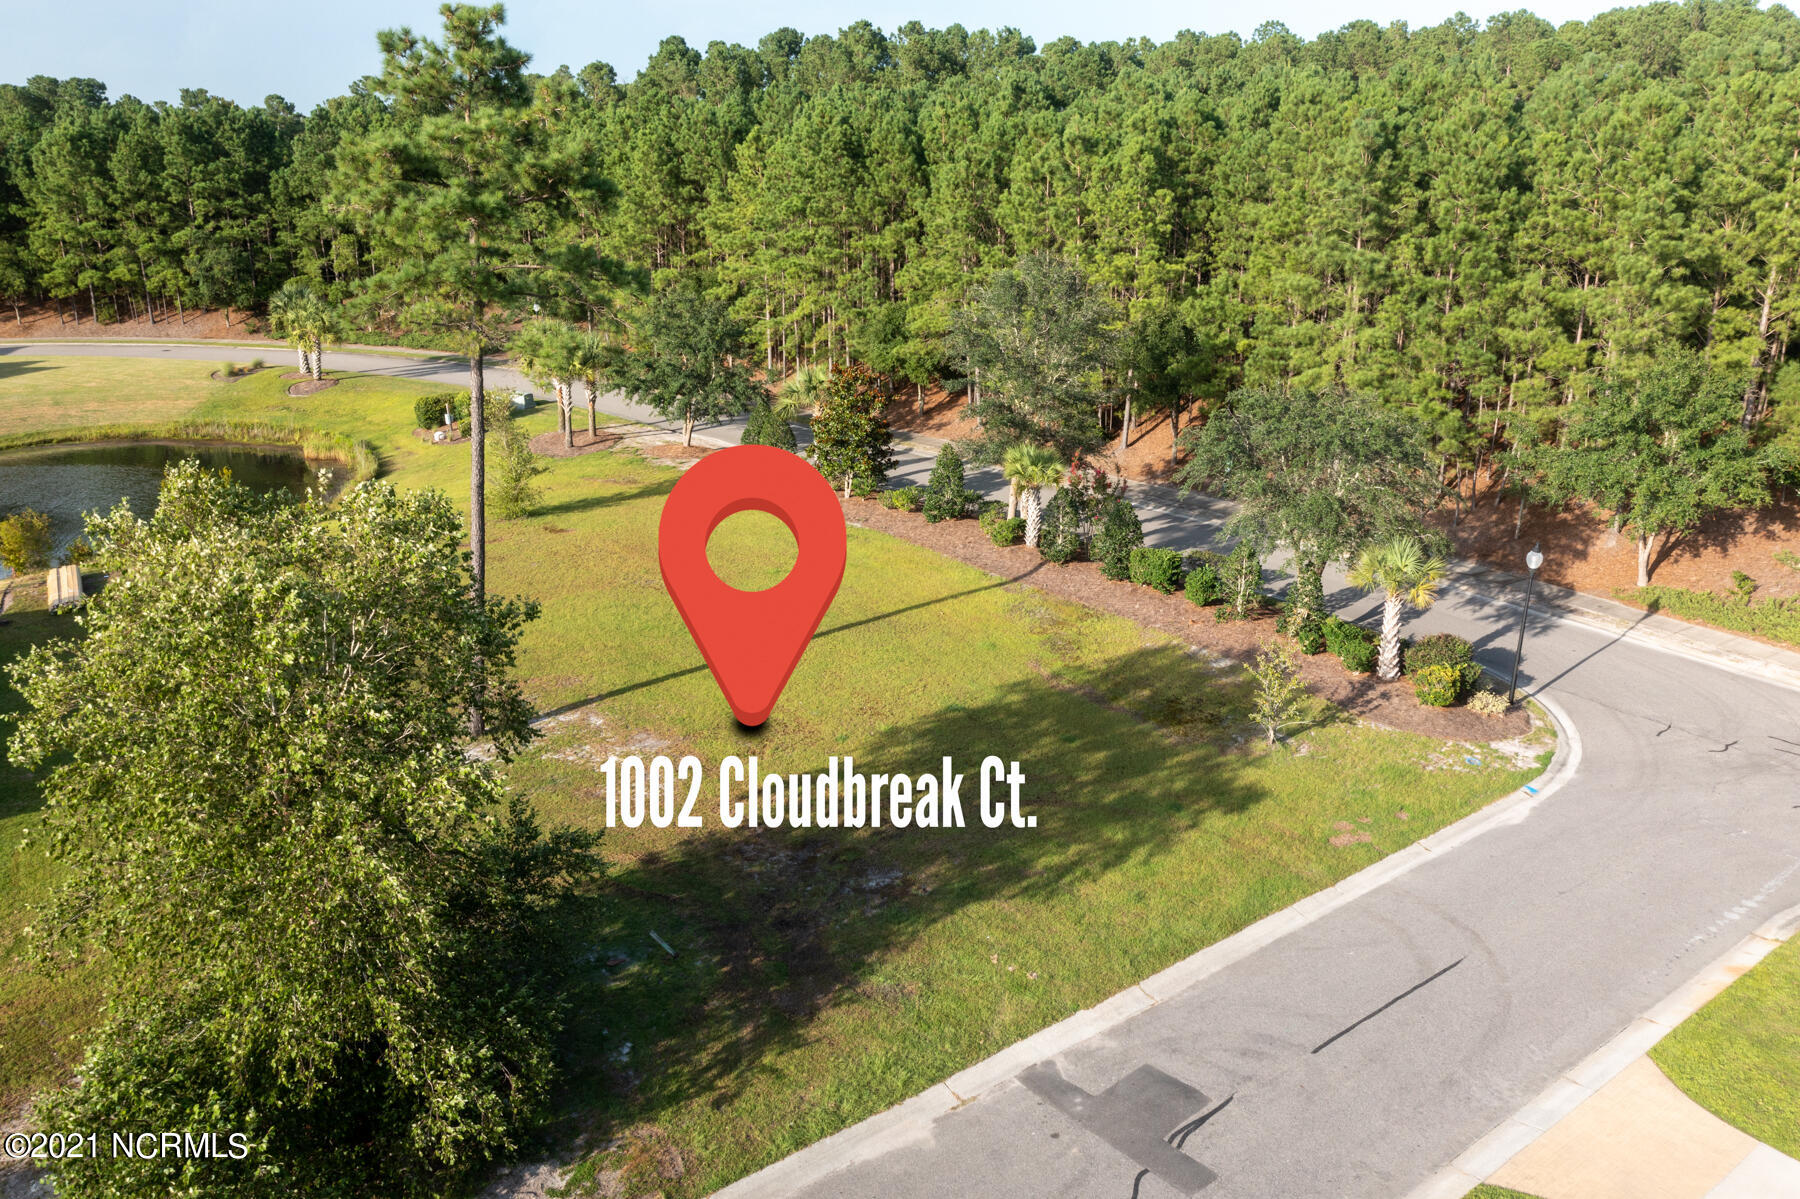 Looking for a place to build your dream home? This large, corner lot, backing up to the canal could be the one! You can enjoy all that Waterford has to offer with all of its amenities, and the convenience of all the shopping, dining & activities available in growing Leland.